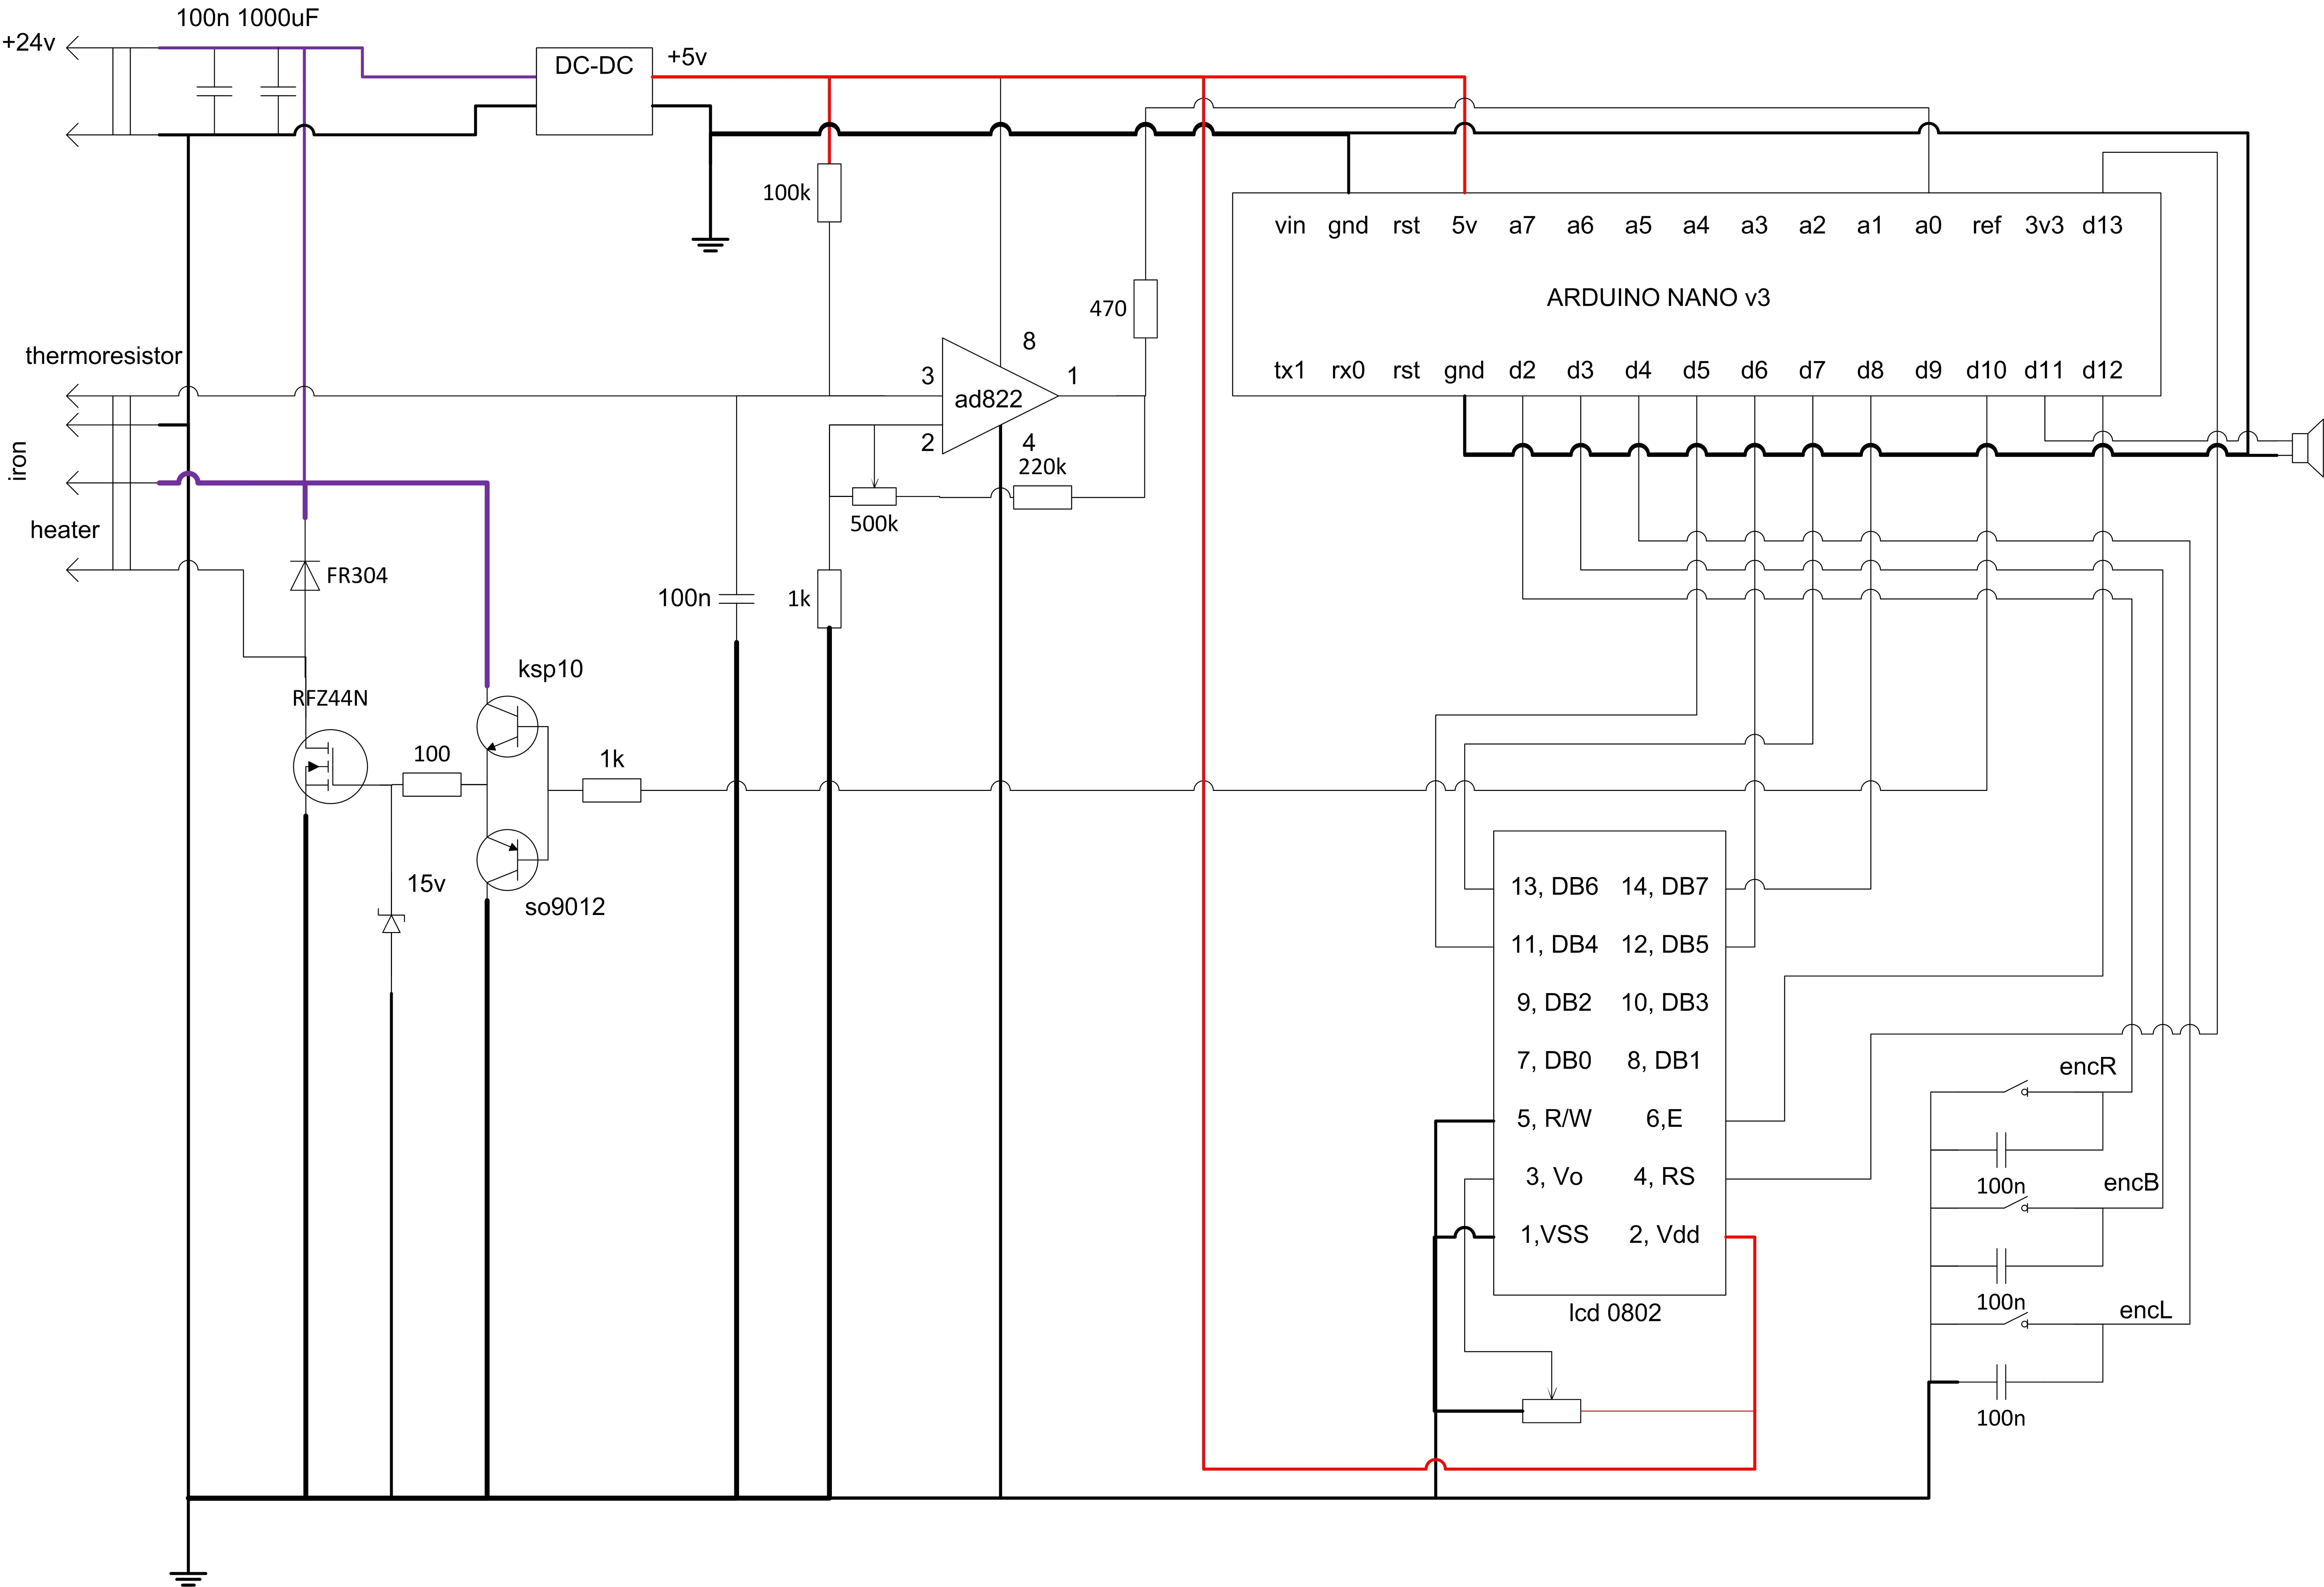 The complete controller schematics for thermistor sensor